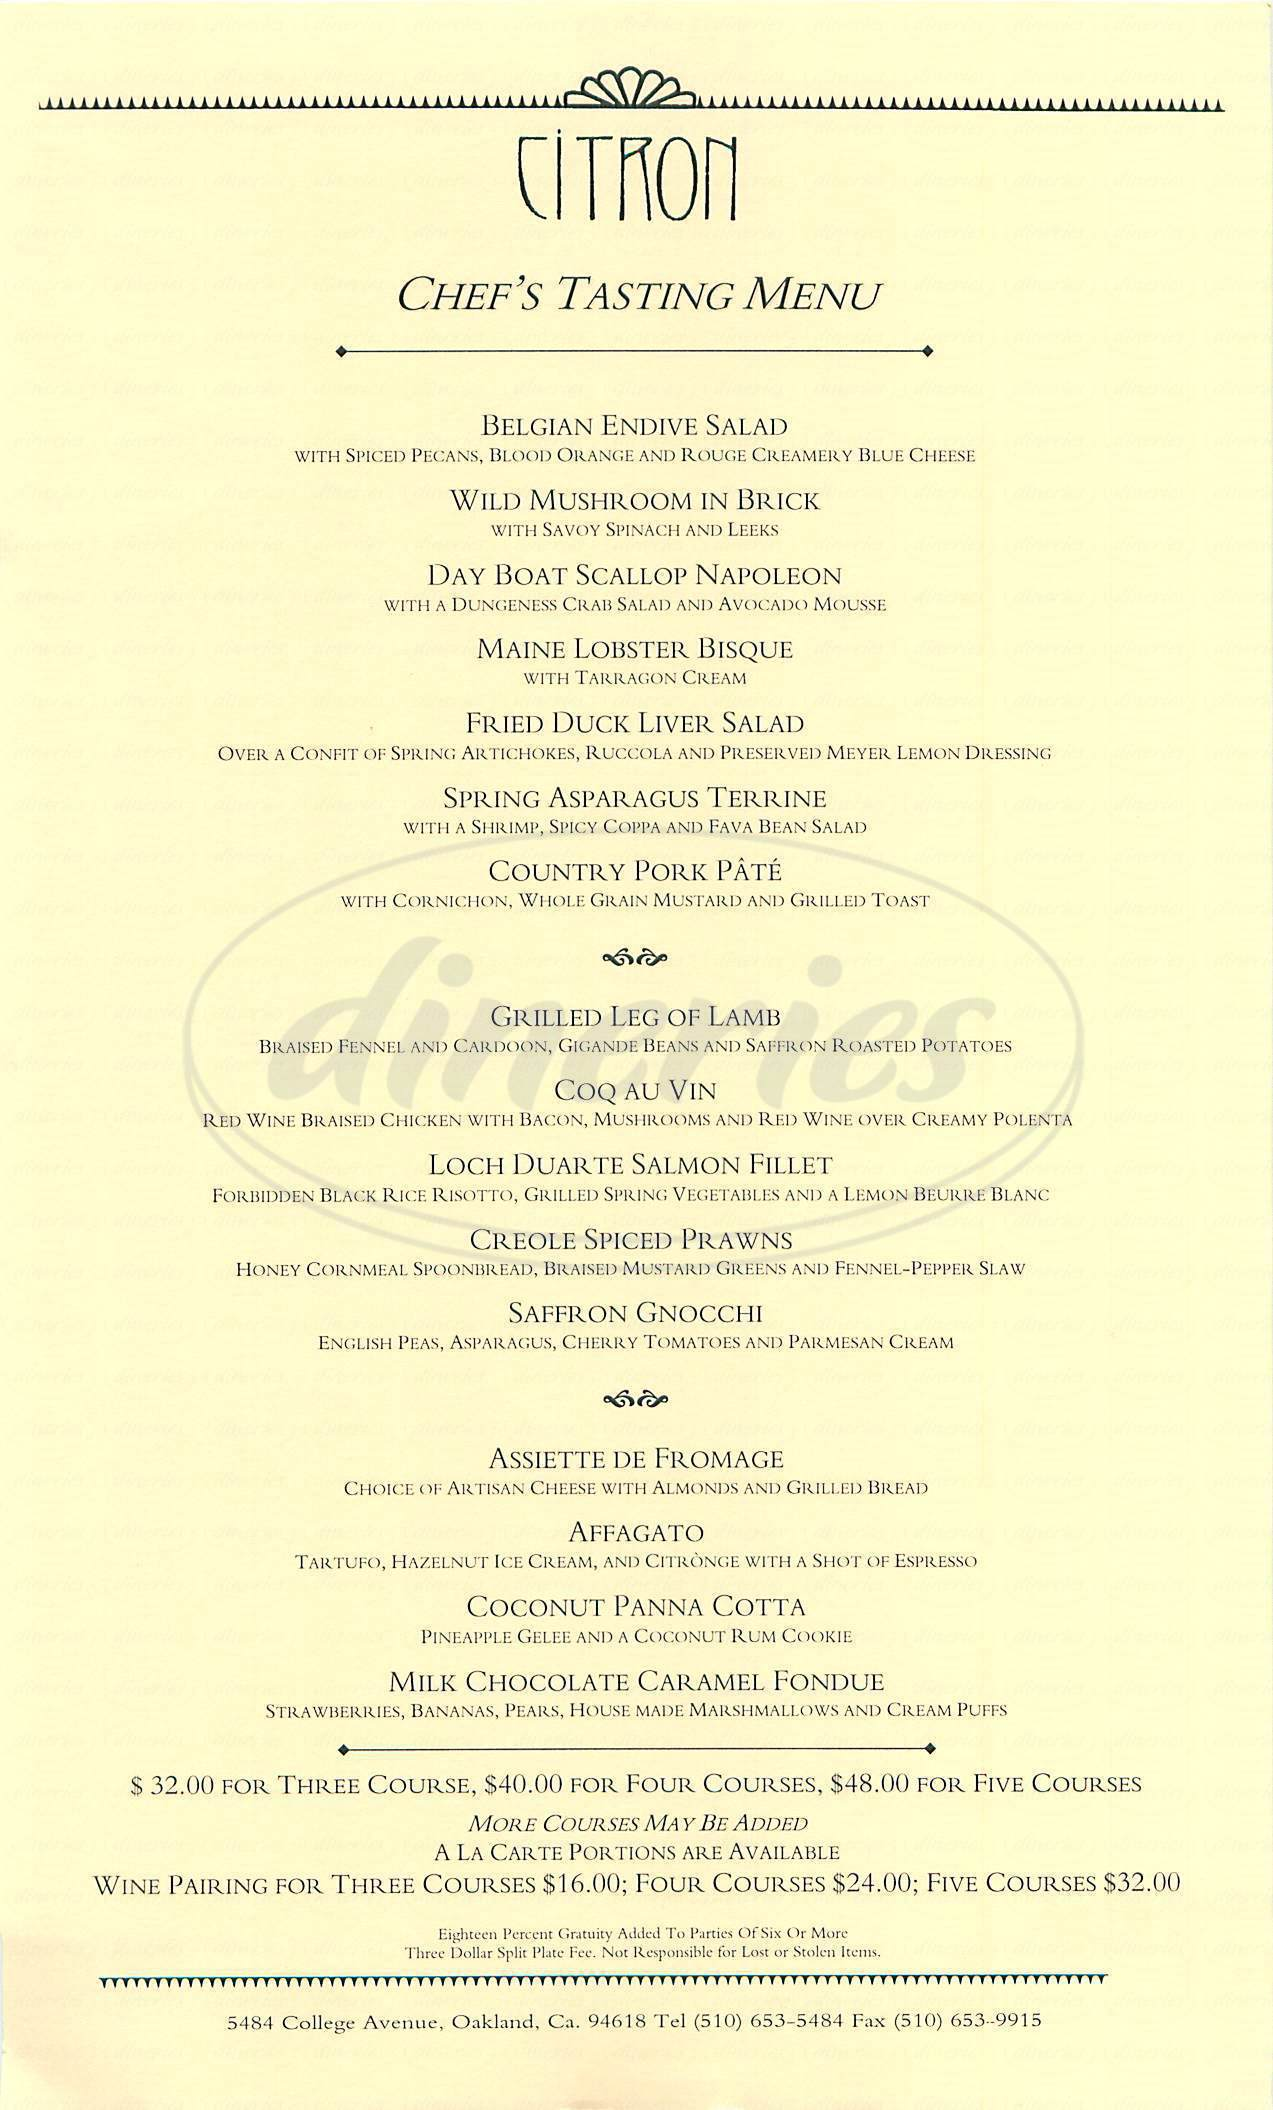 menu for Citron Restaurant